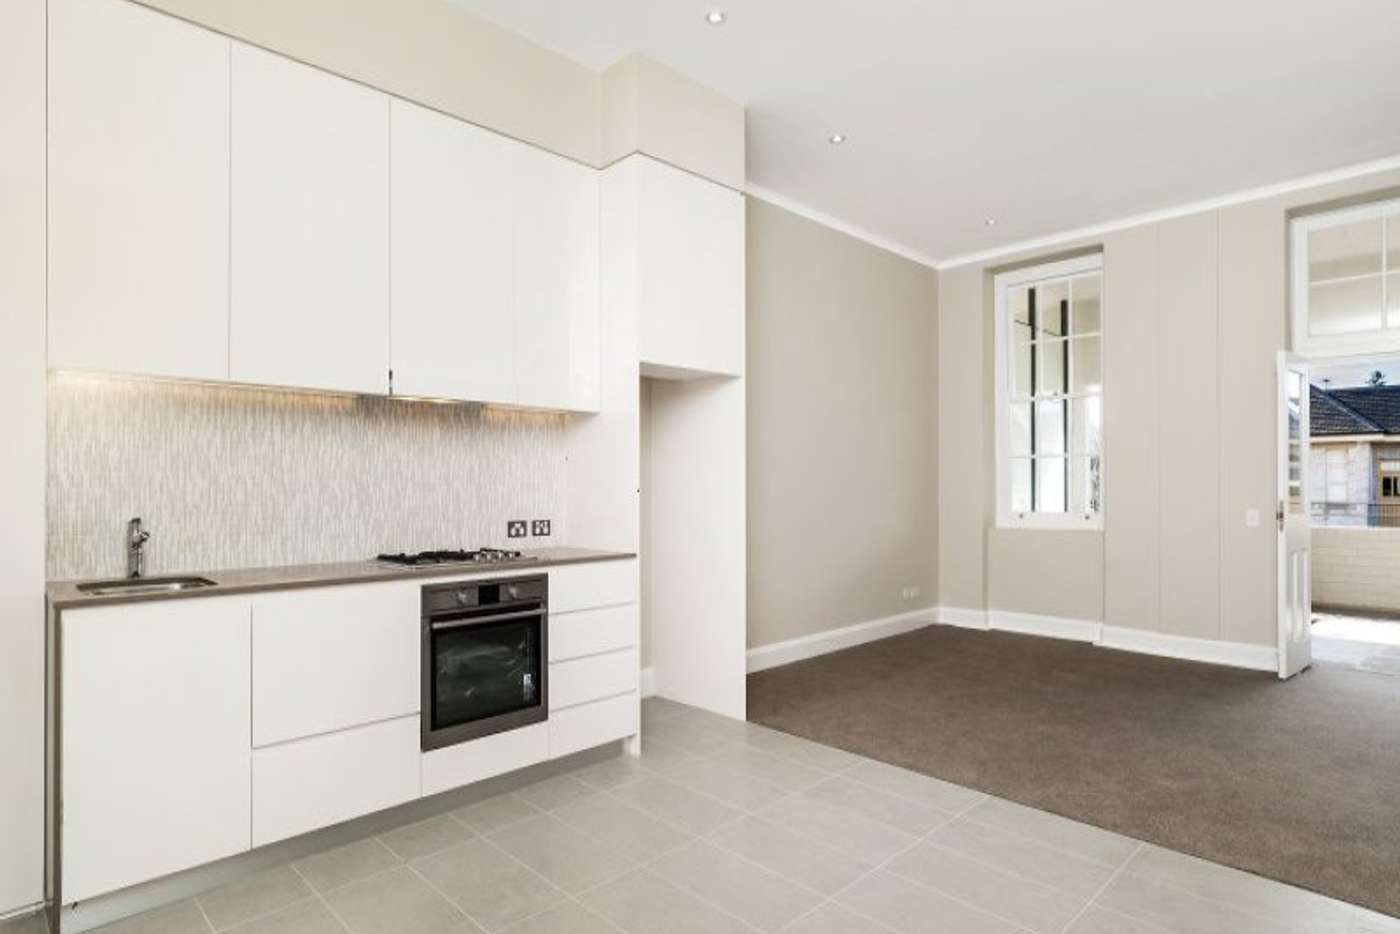 Main view of Homely apartment listing, 2/1 Flemming Street, Little Bay NSW 2036